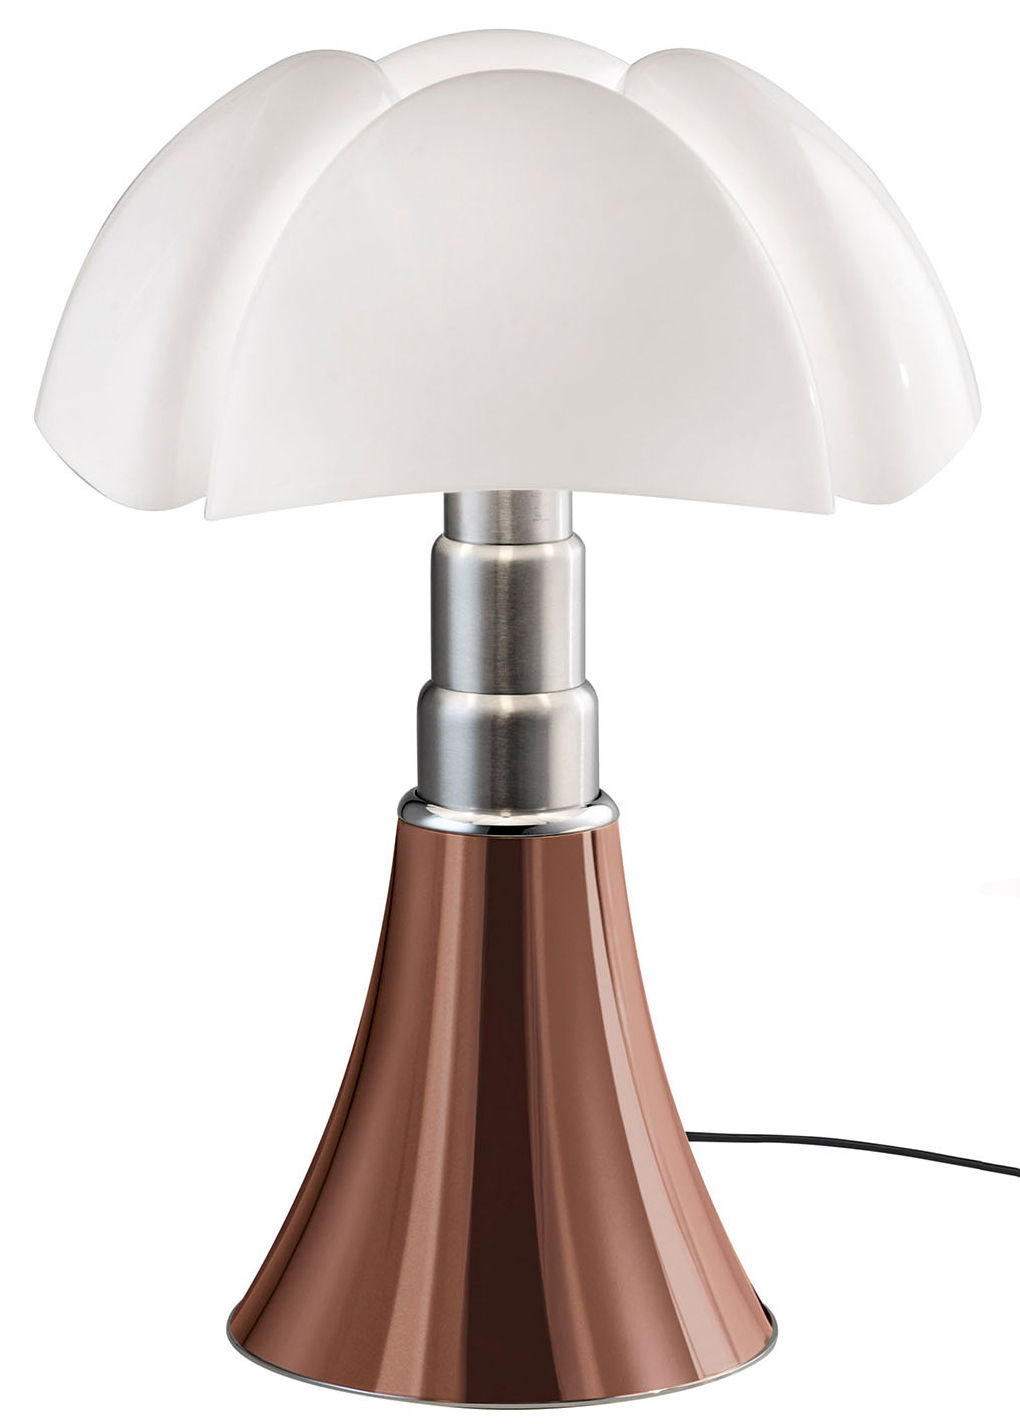 Lampe Cuivre Lampe De Table Pipistrello Led H 66 à 86 Cm Martinelli Luce